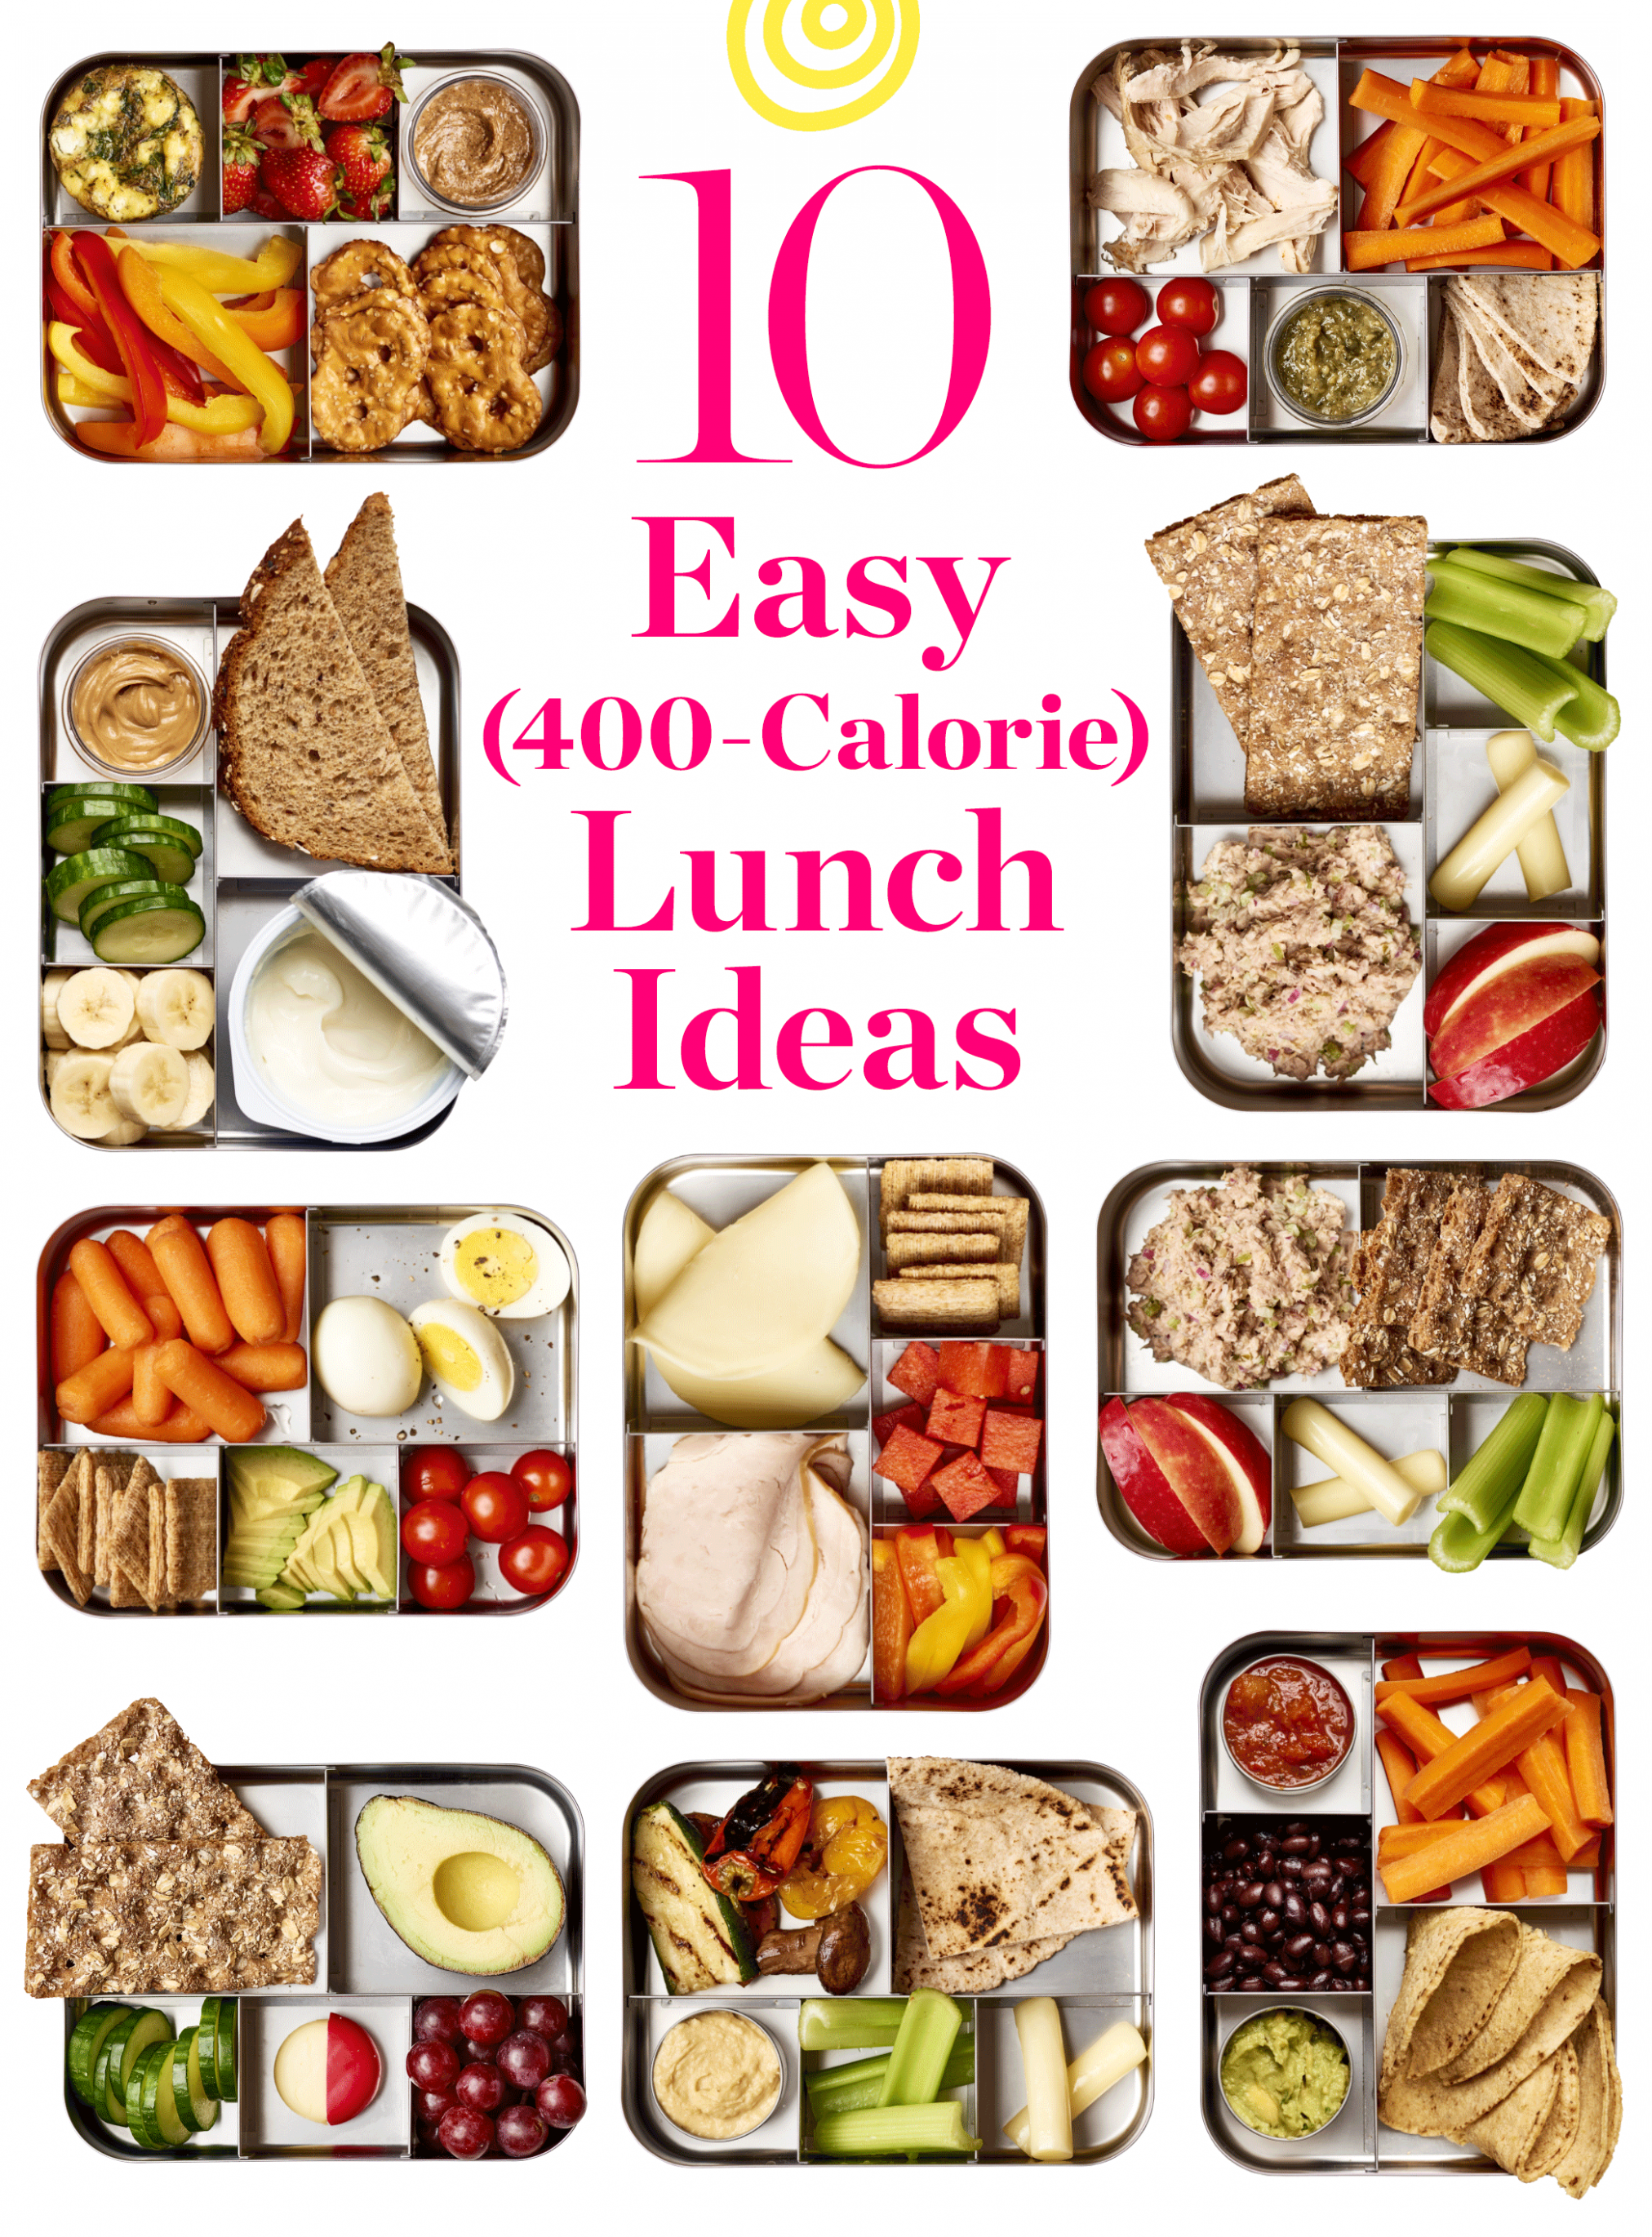 9 Easy Lunch Ideas Under 9 Calories | Kitchn